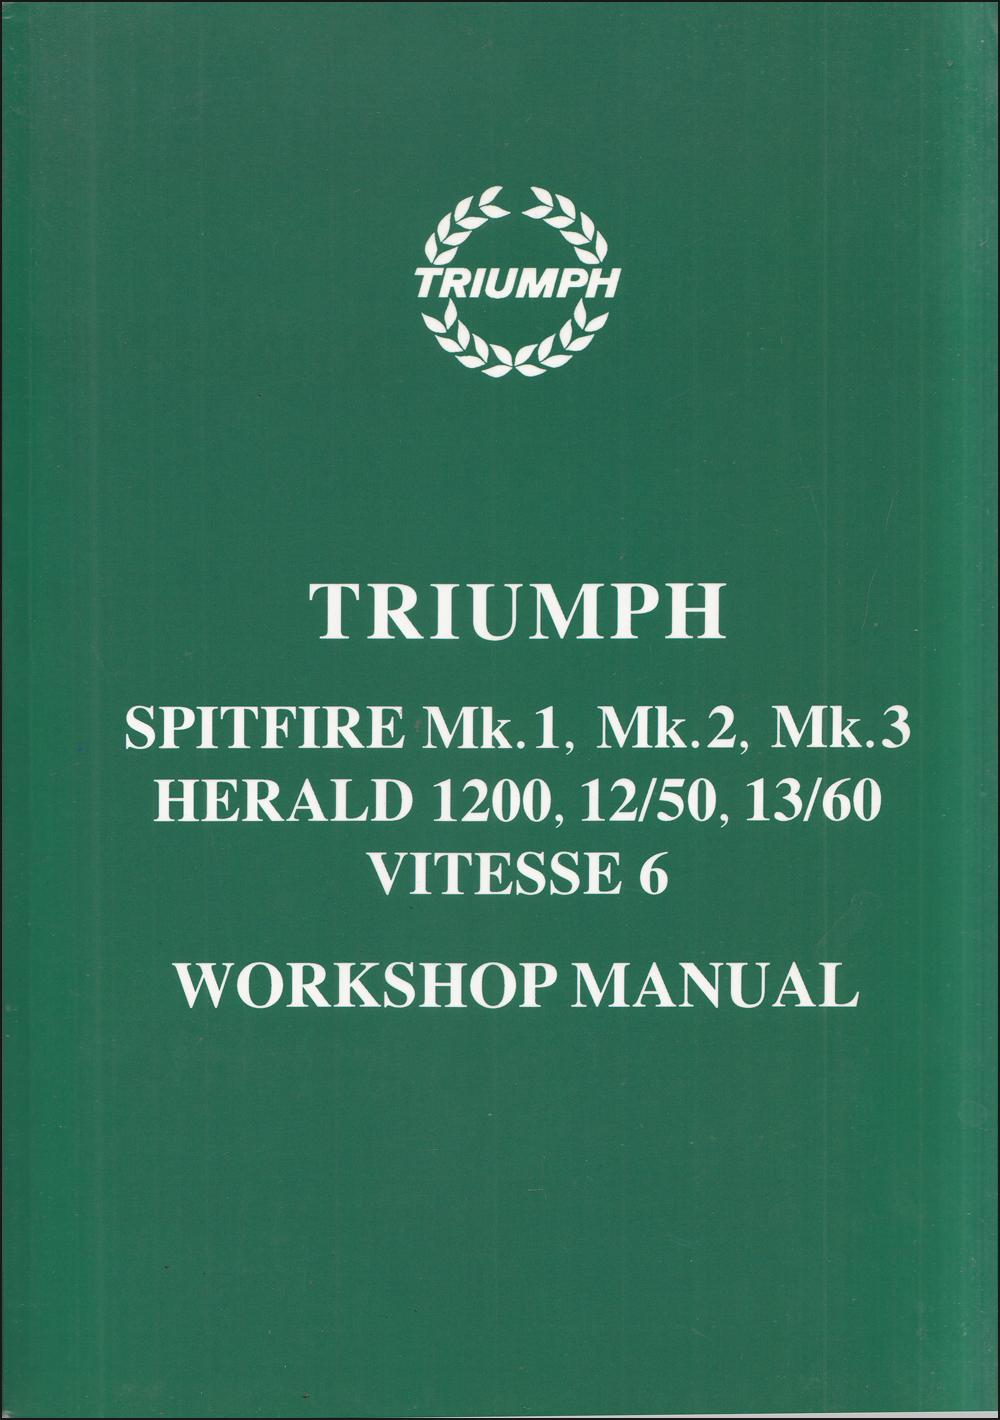 1960-1970 Triumph Spitfire and Herald Repair Shop Manual Reprint